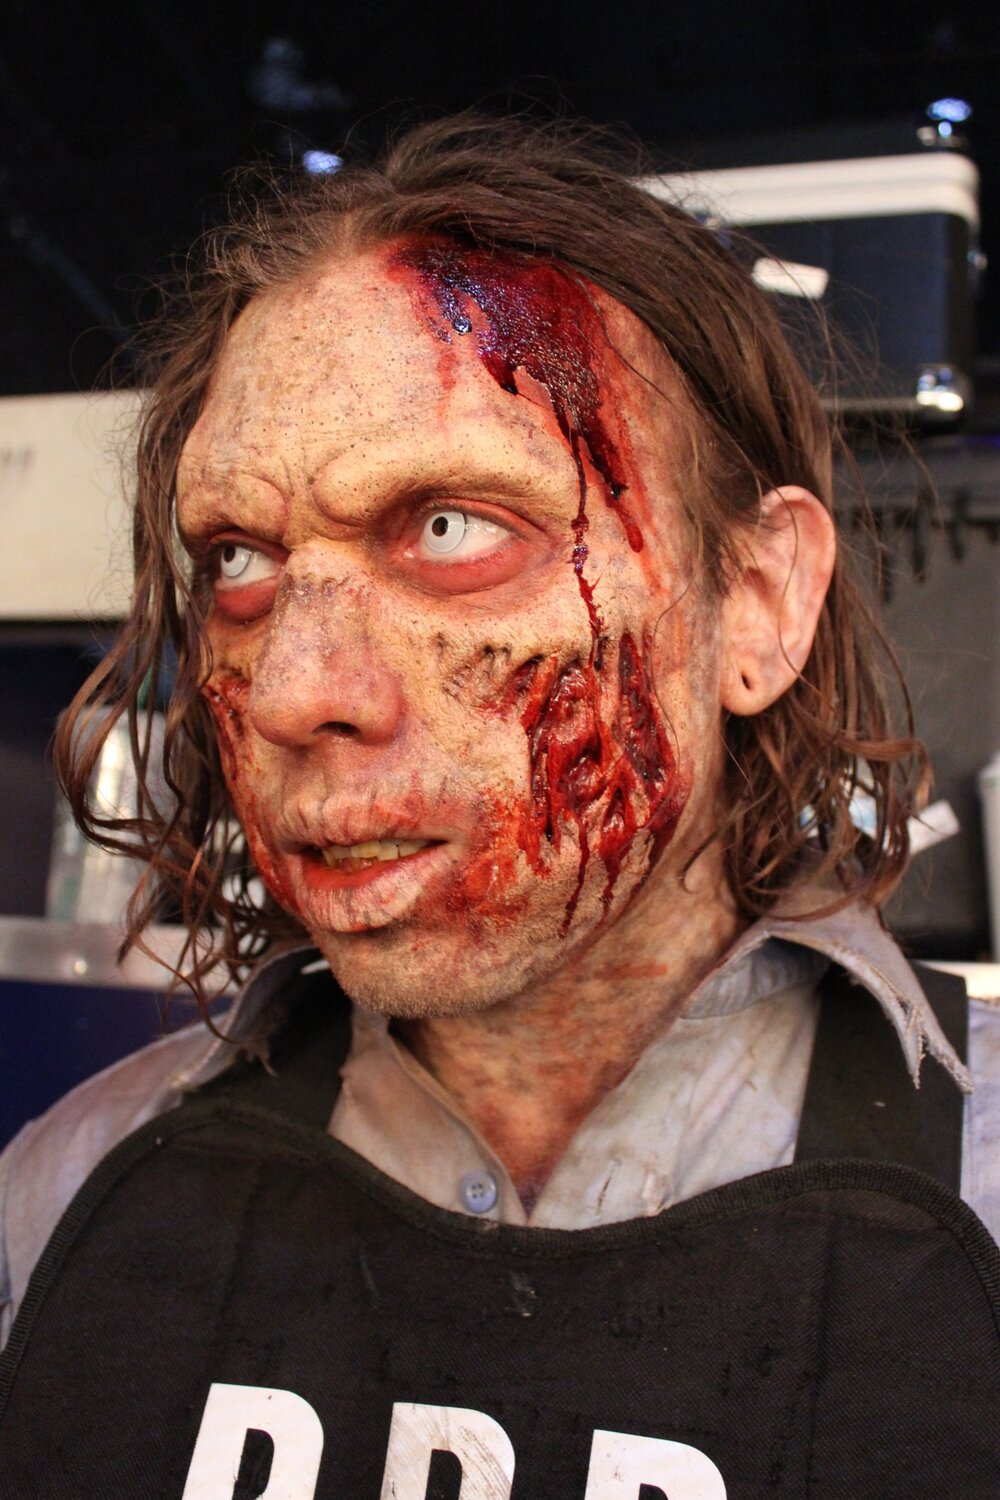 E3: Resident Evil 2, 2018 Production: Resident Evil 2 & Capcom Makeup Department Head: Sherrie Long Actor: William Galarza Makeup provided by: RBFX, EBA Performance Makeup, PT Material, & Mouth FX